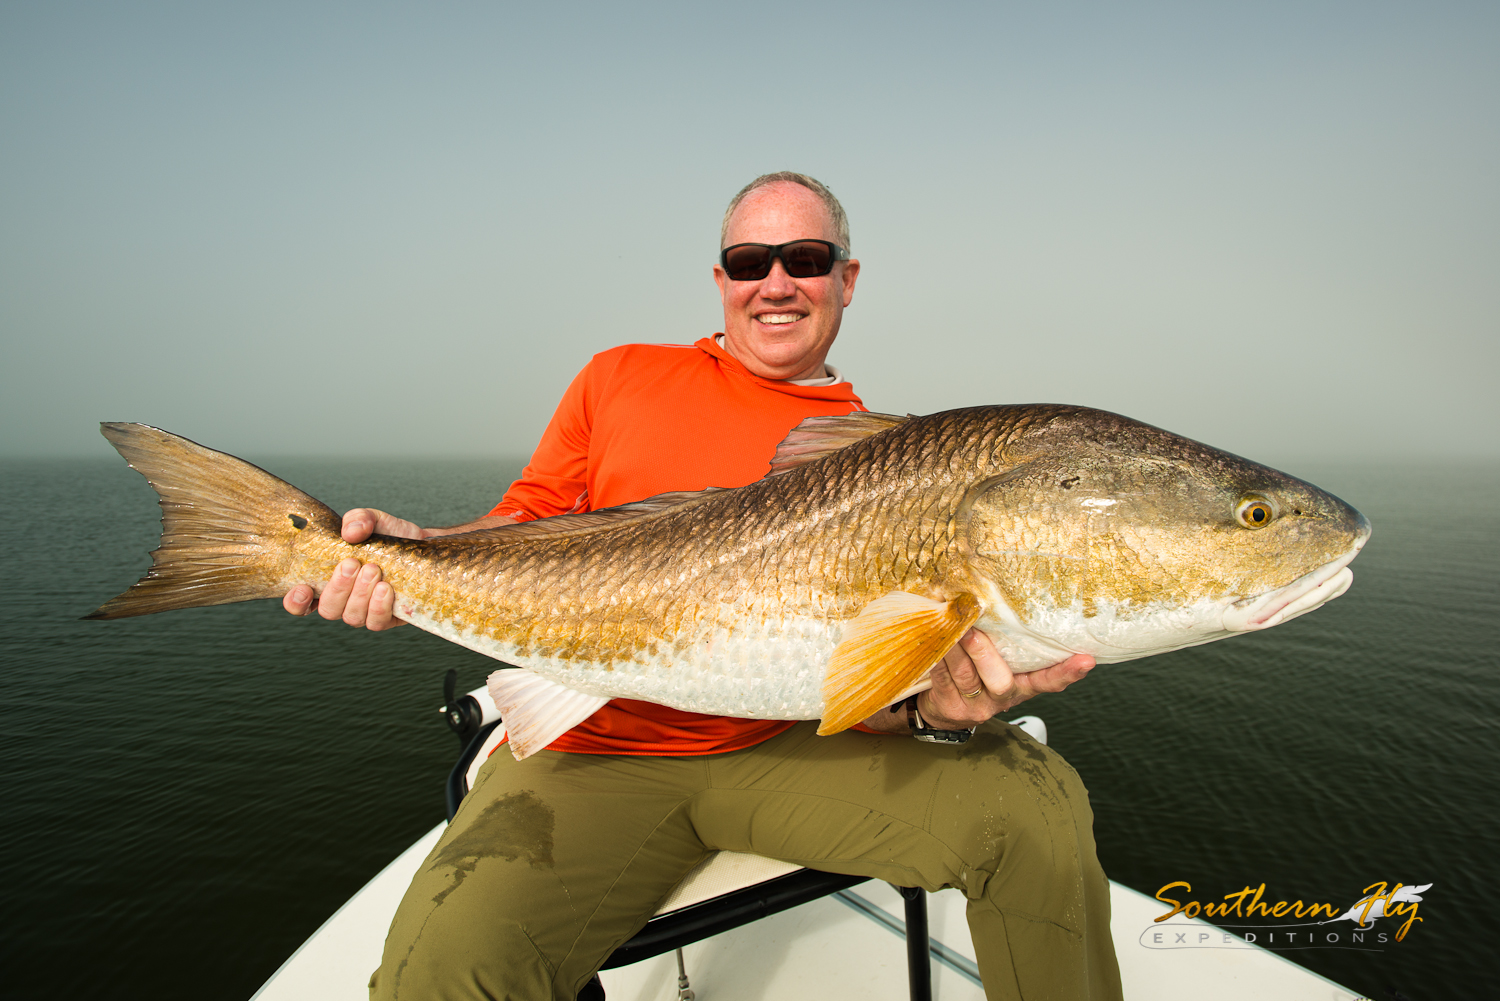 Fly Fishing for Redfish Louisiana with Southern Fly Expeditions